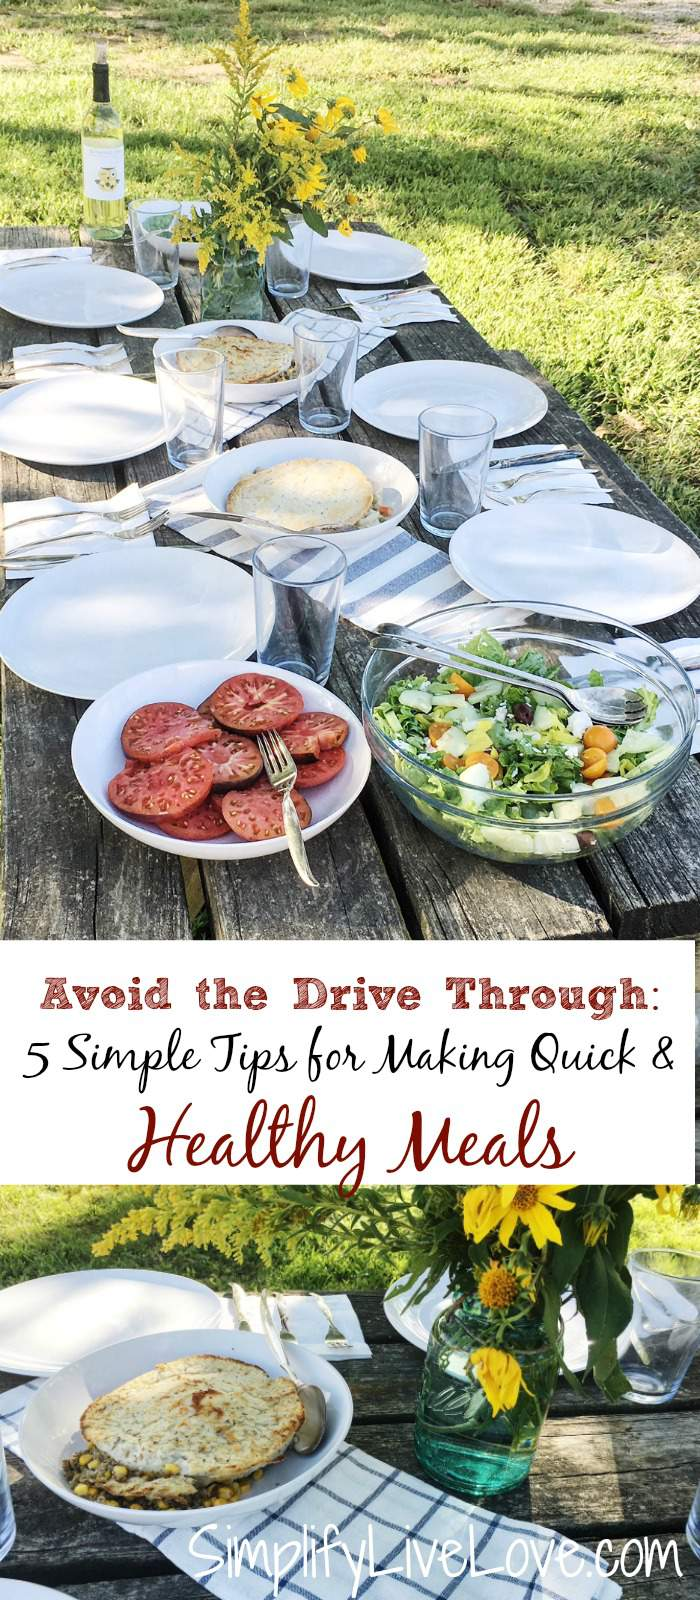 If busy nights mean you're grabbing drive-through take out instead of eating healthy meals, you will want to read these 5 tips! They will help you put healthy meals on the table even on the busiest of nights. AD @BlakesNatural